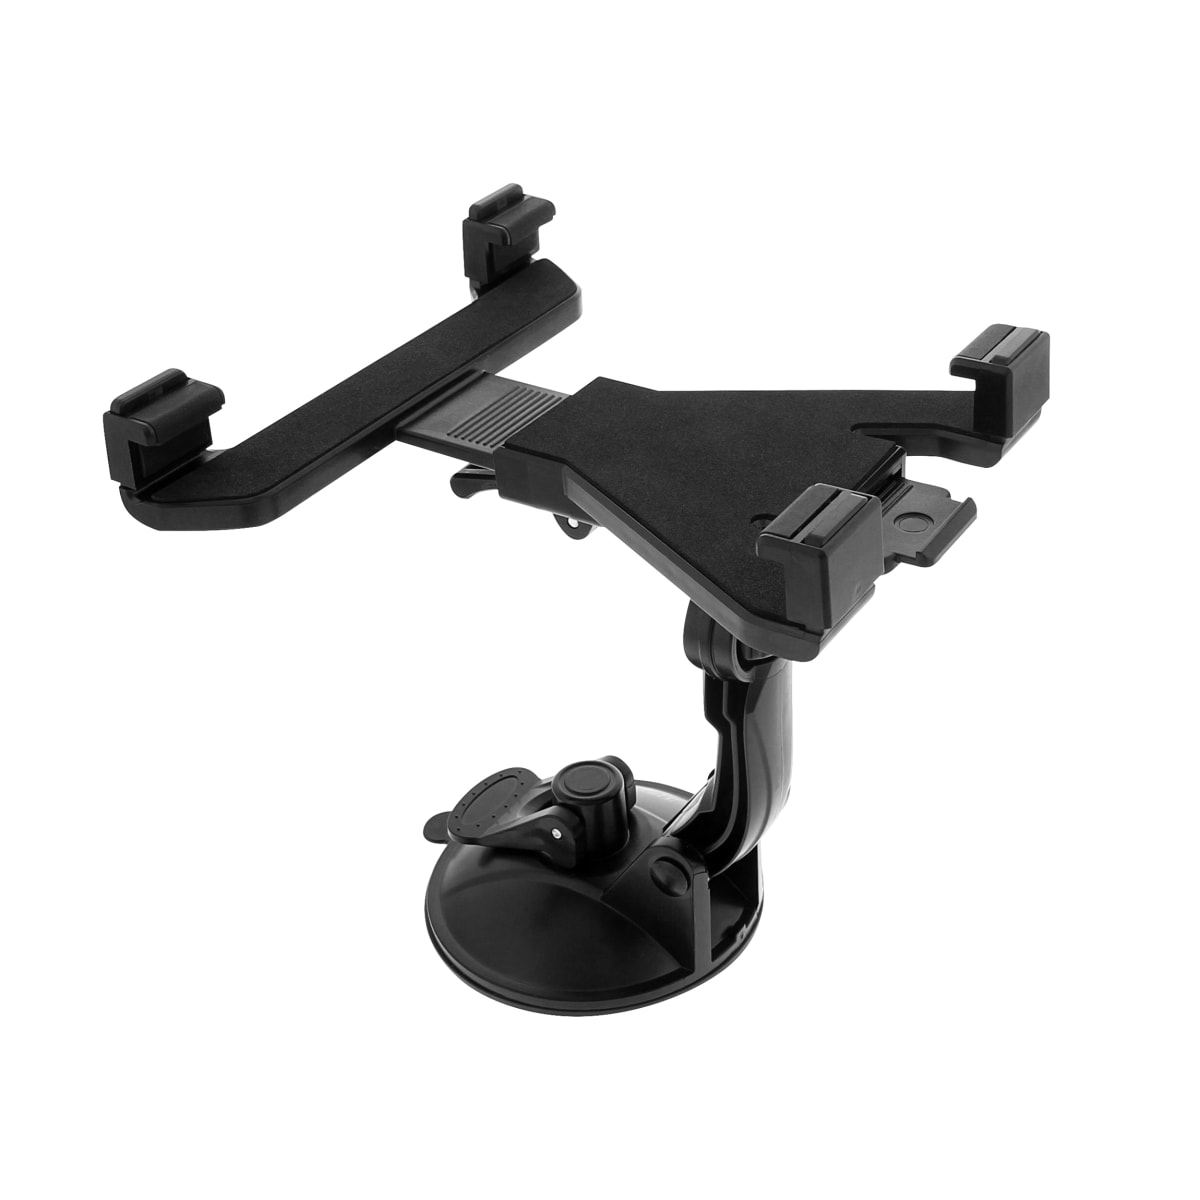 Suction cup jaw holder for tablets